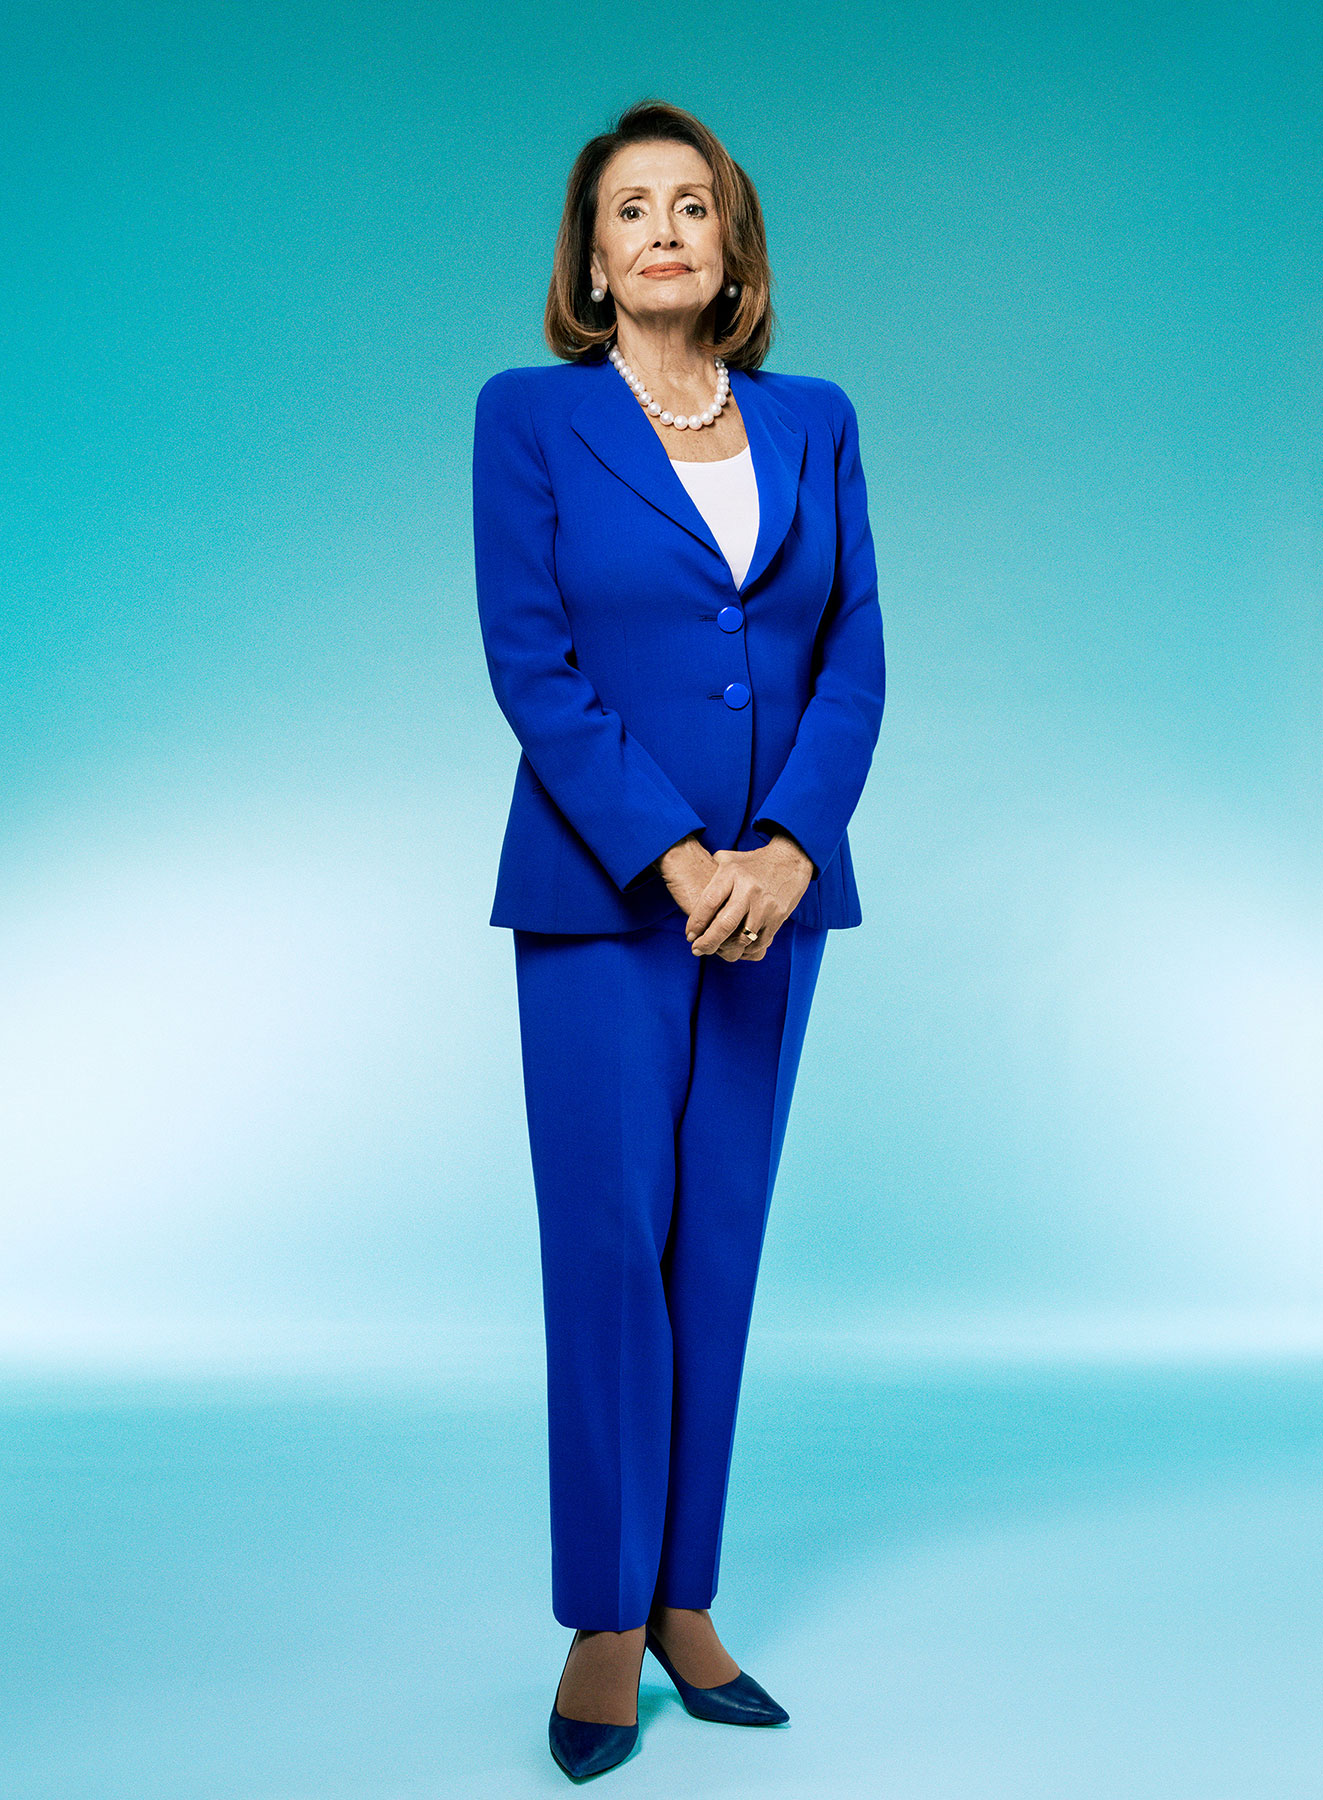 Nancy Pelosi Is On The 2019 Time 100 List